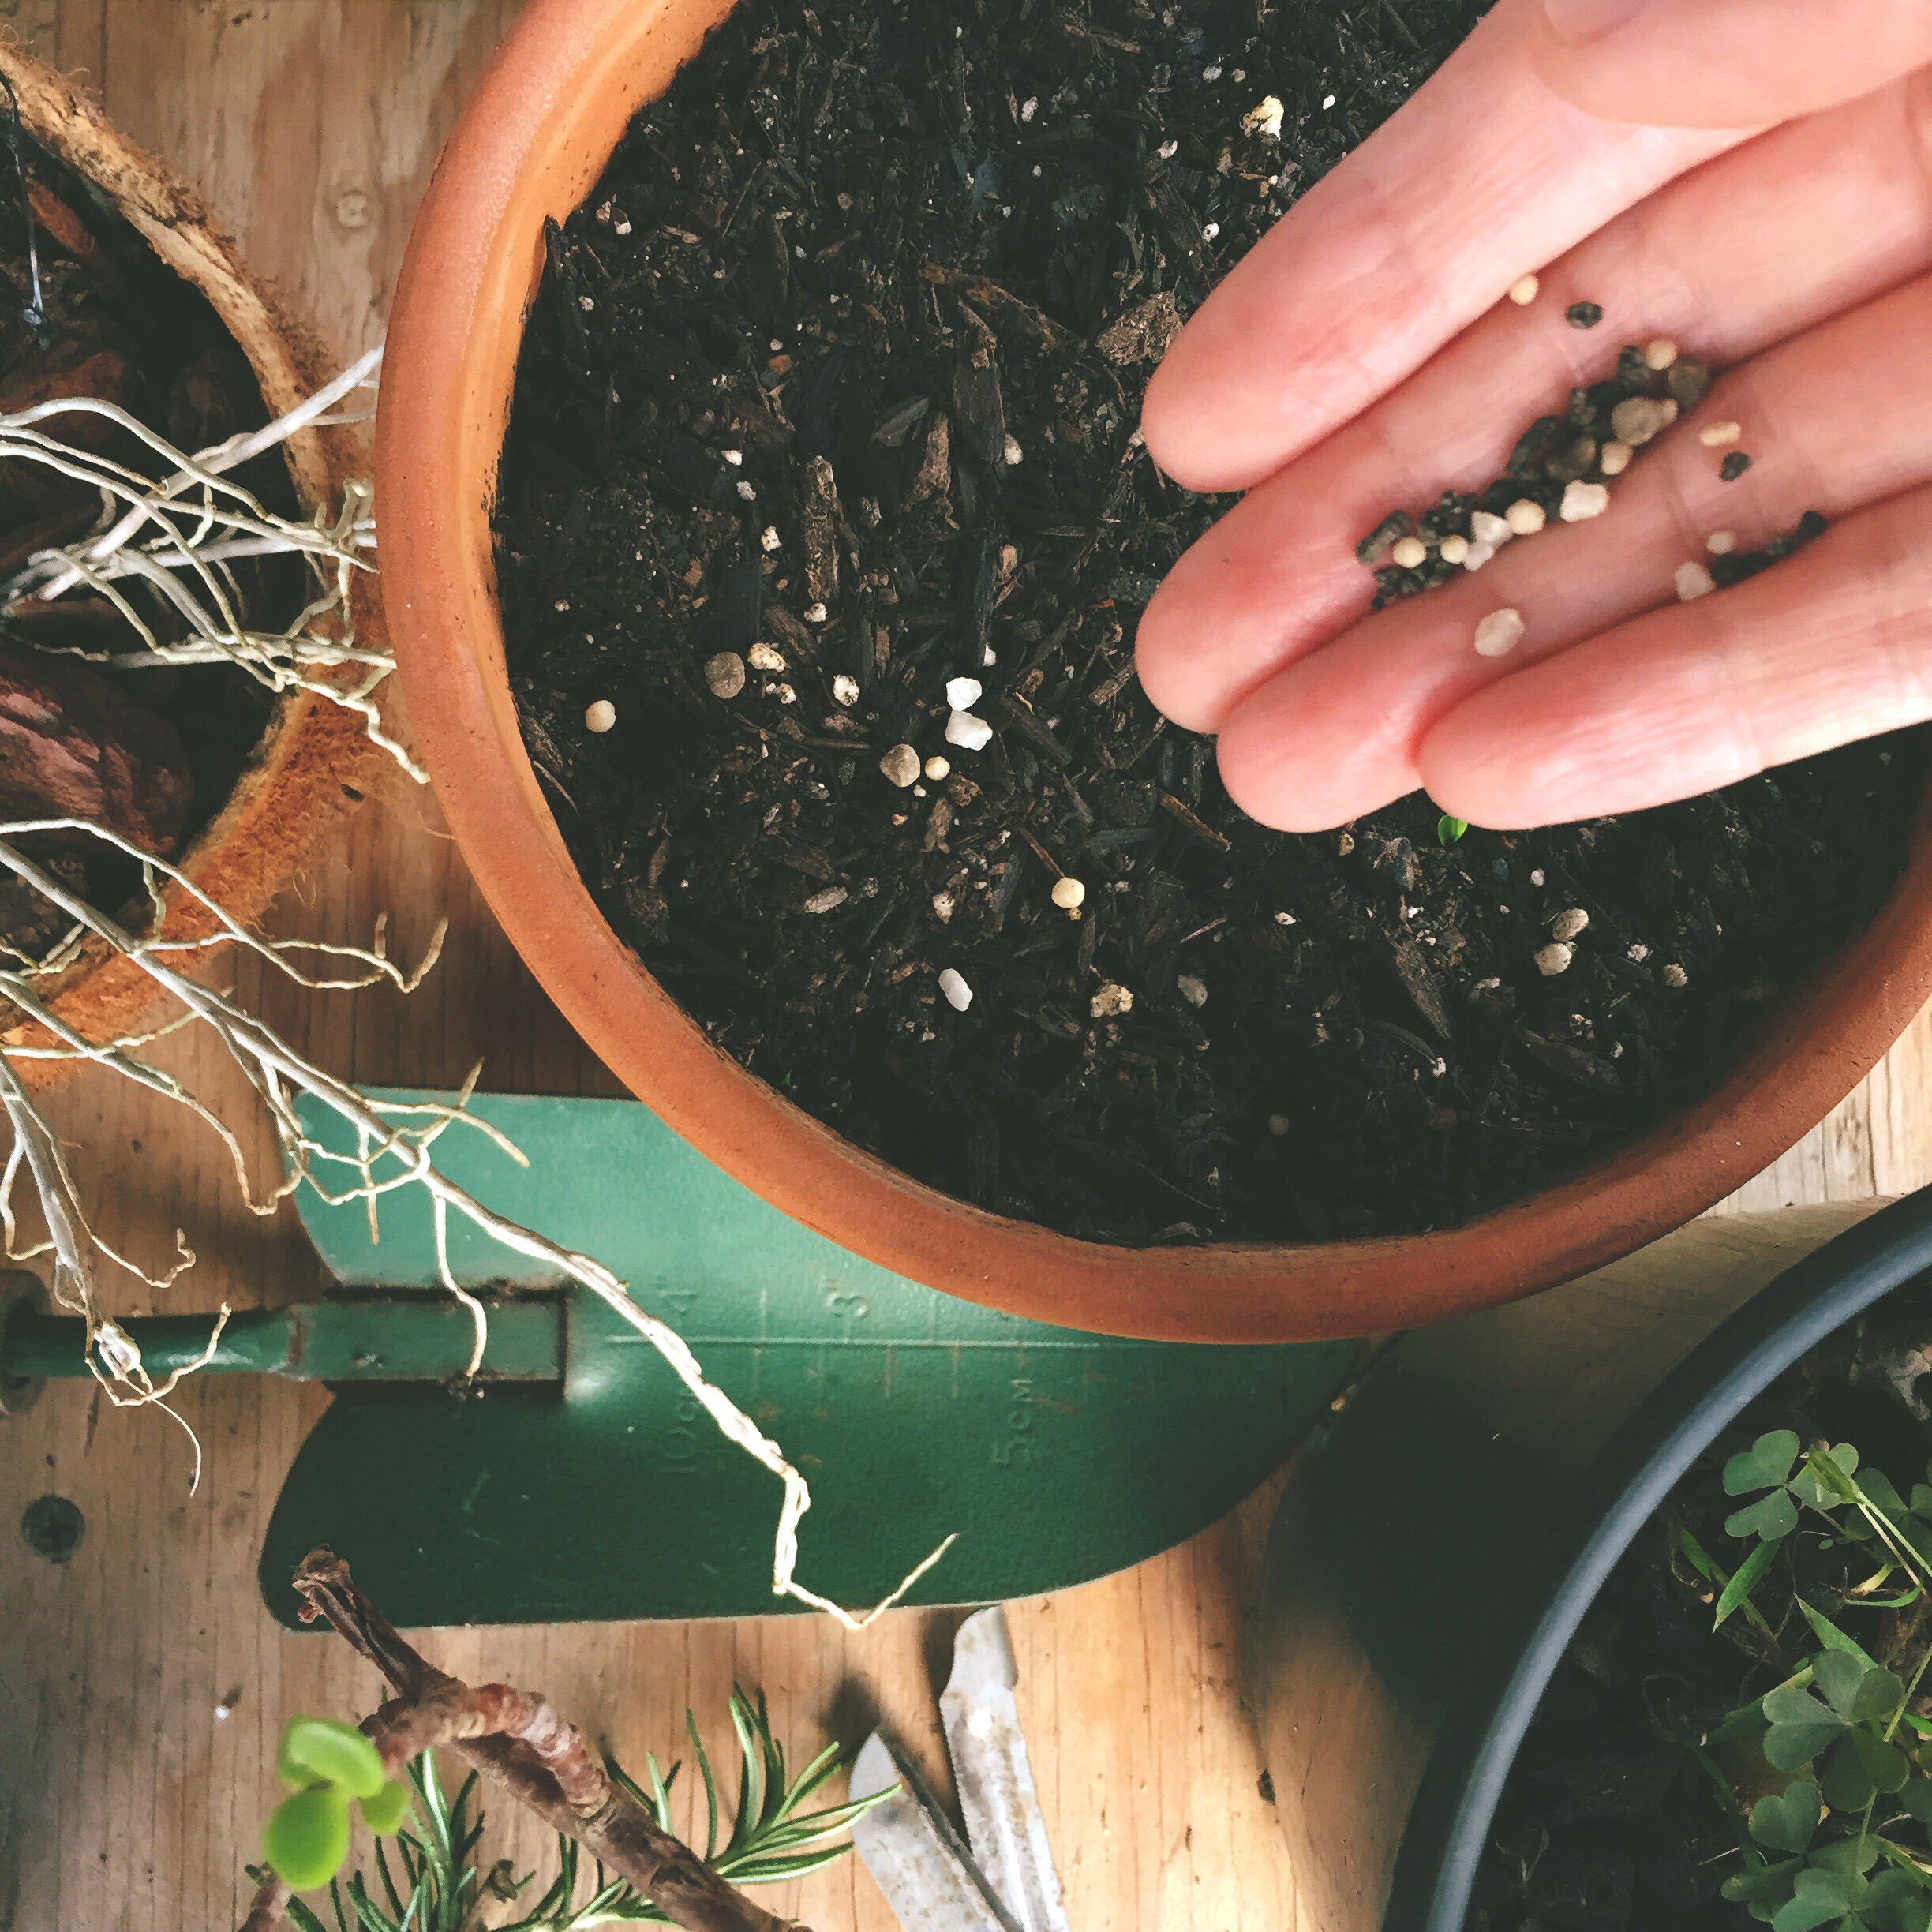 Succulent Fertilization Facts: Why It Matters & How To Do It